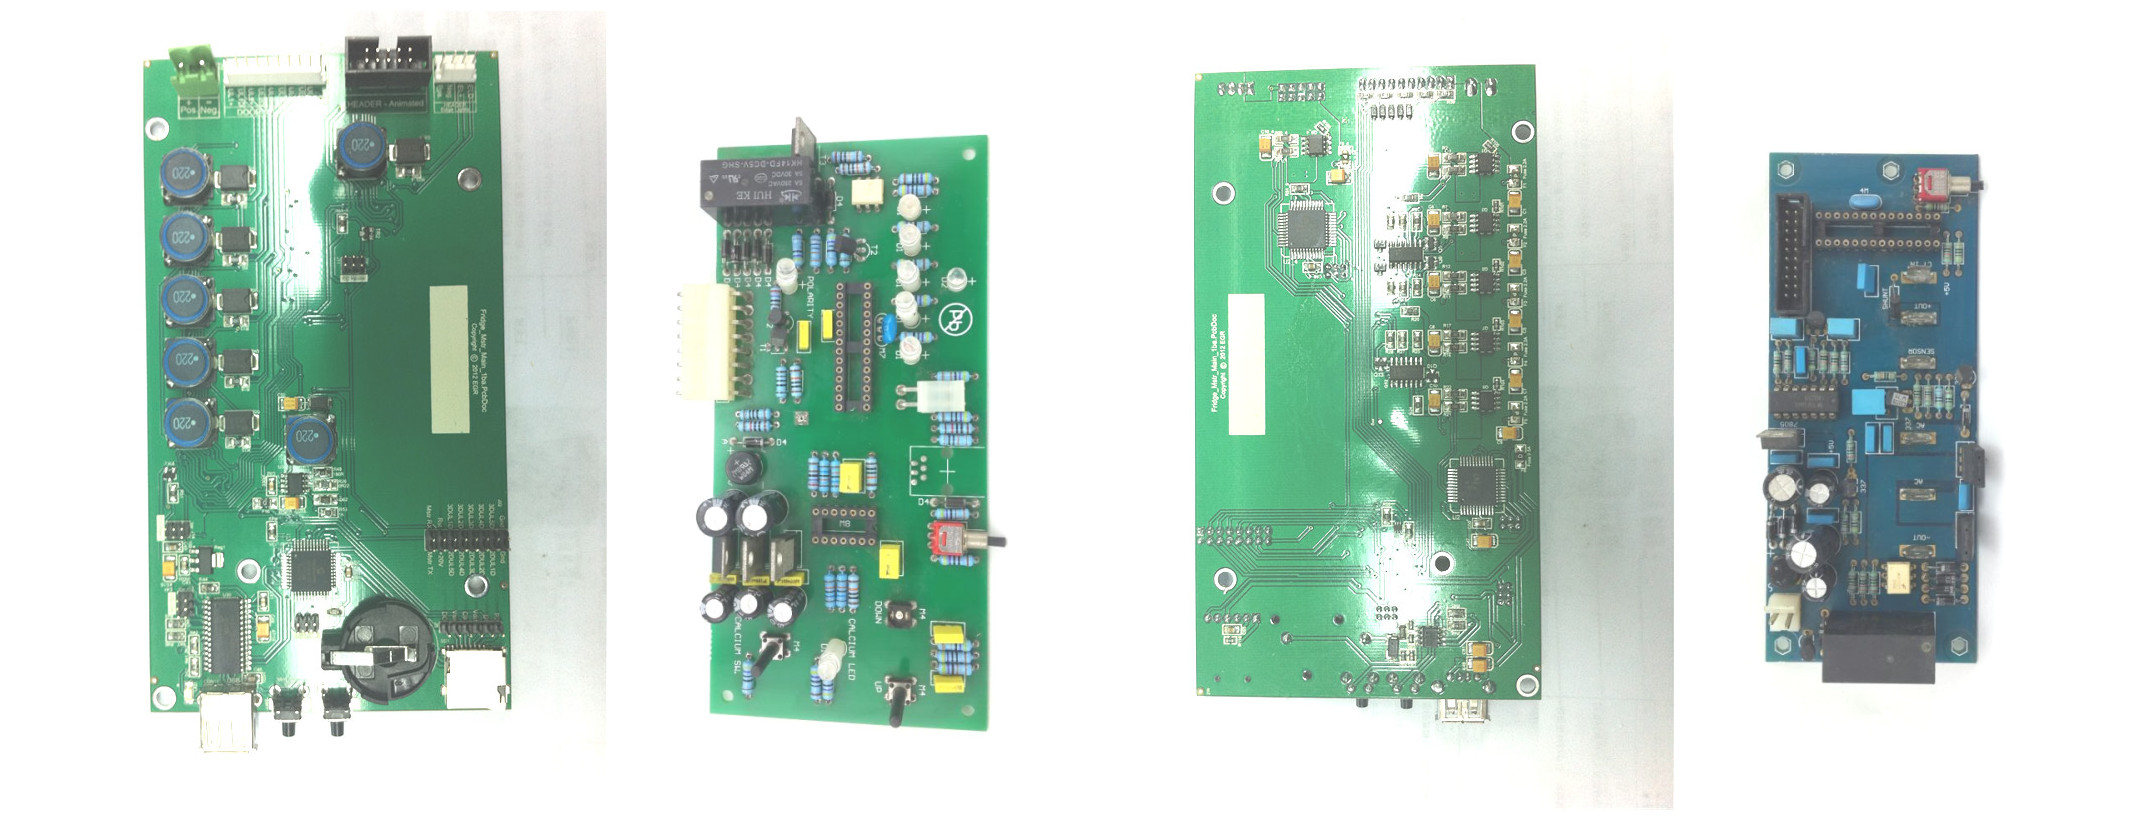 Pcb Manufacture Components Assembly Chip Programming Testing Printed Circuit Boards Manufacturer High Technology Solutions